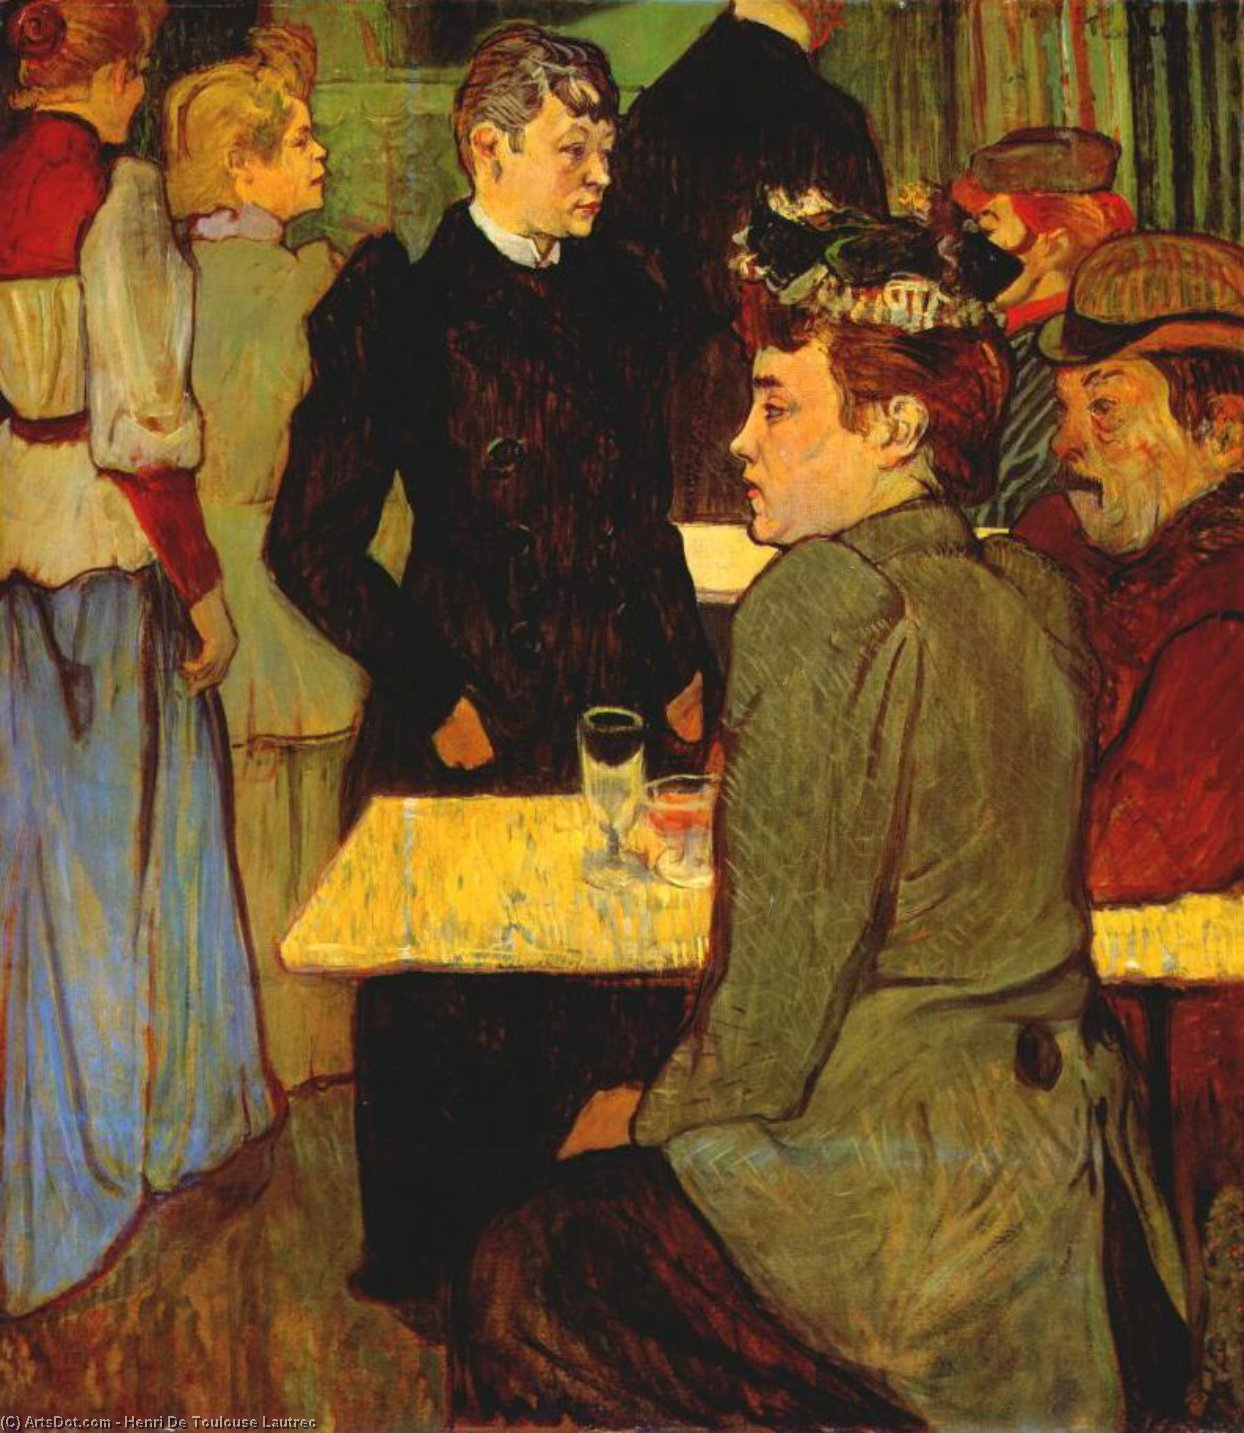 Corner in the Moulin de la Galette, Oil by Henri De Toulouse Lautrec (1864-1901, France)